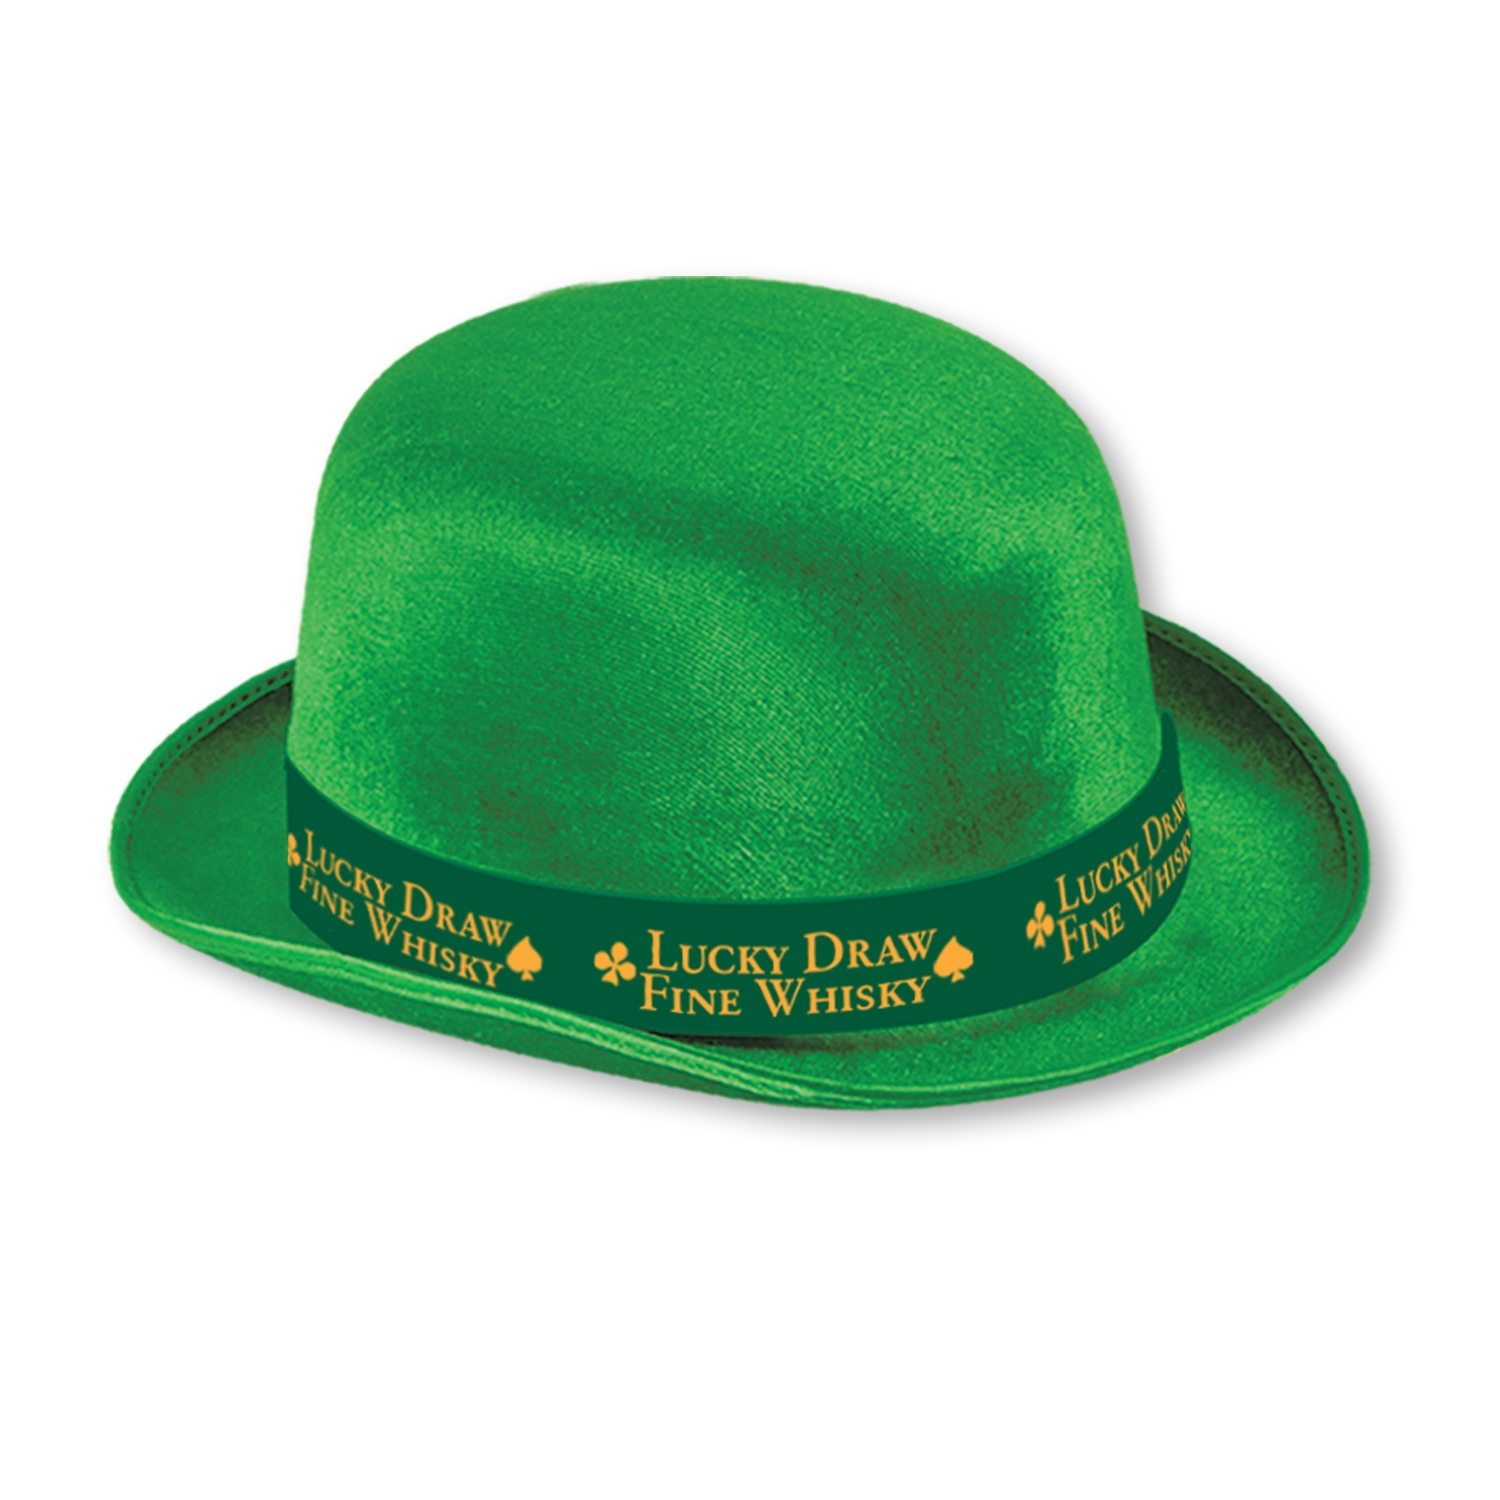 Custom Imprinted Green Felt Derbies with Band Custom Imprinted Green Felt Derbies with Band, custom, green, derby, hat, st. patricks day, party favor, wholesale, inexpensive, bulk